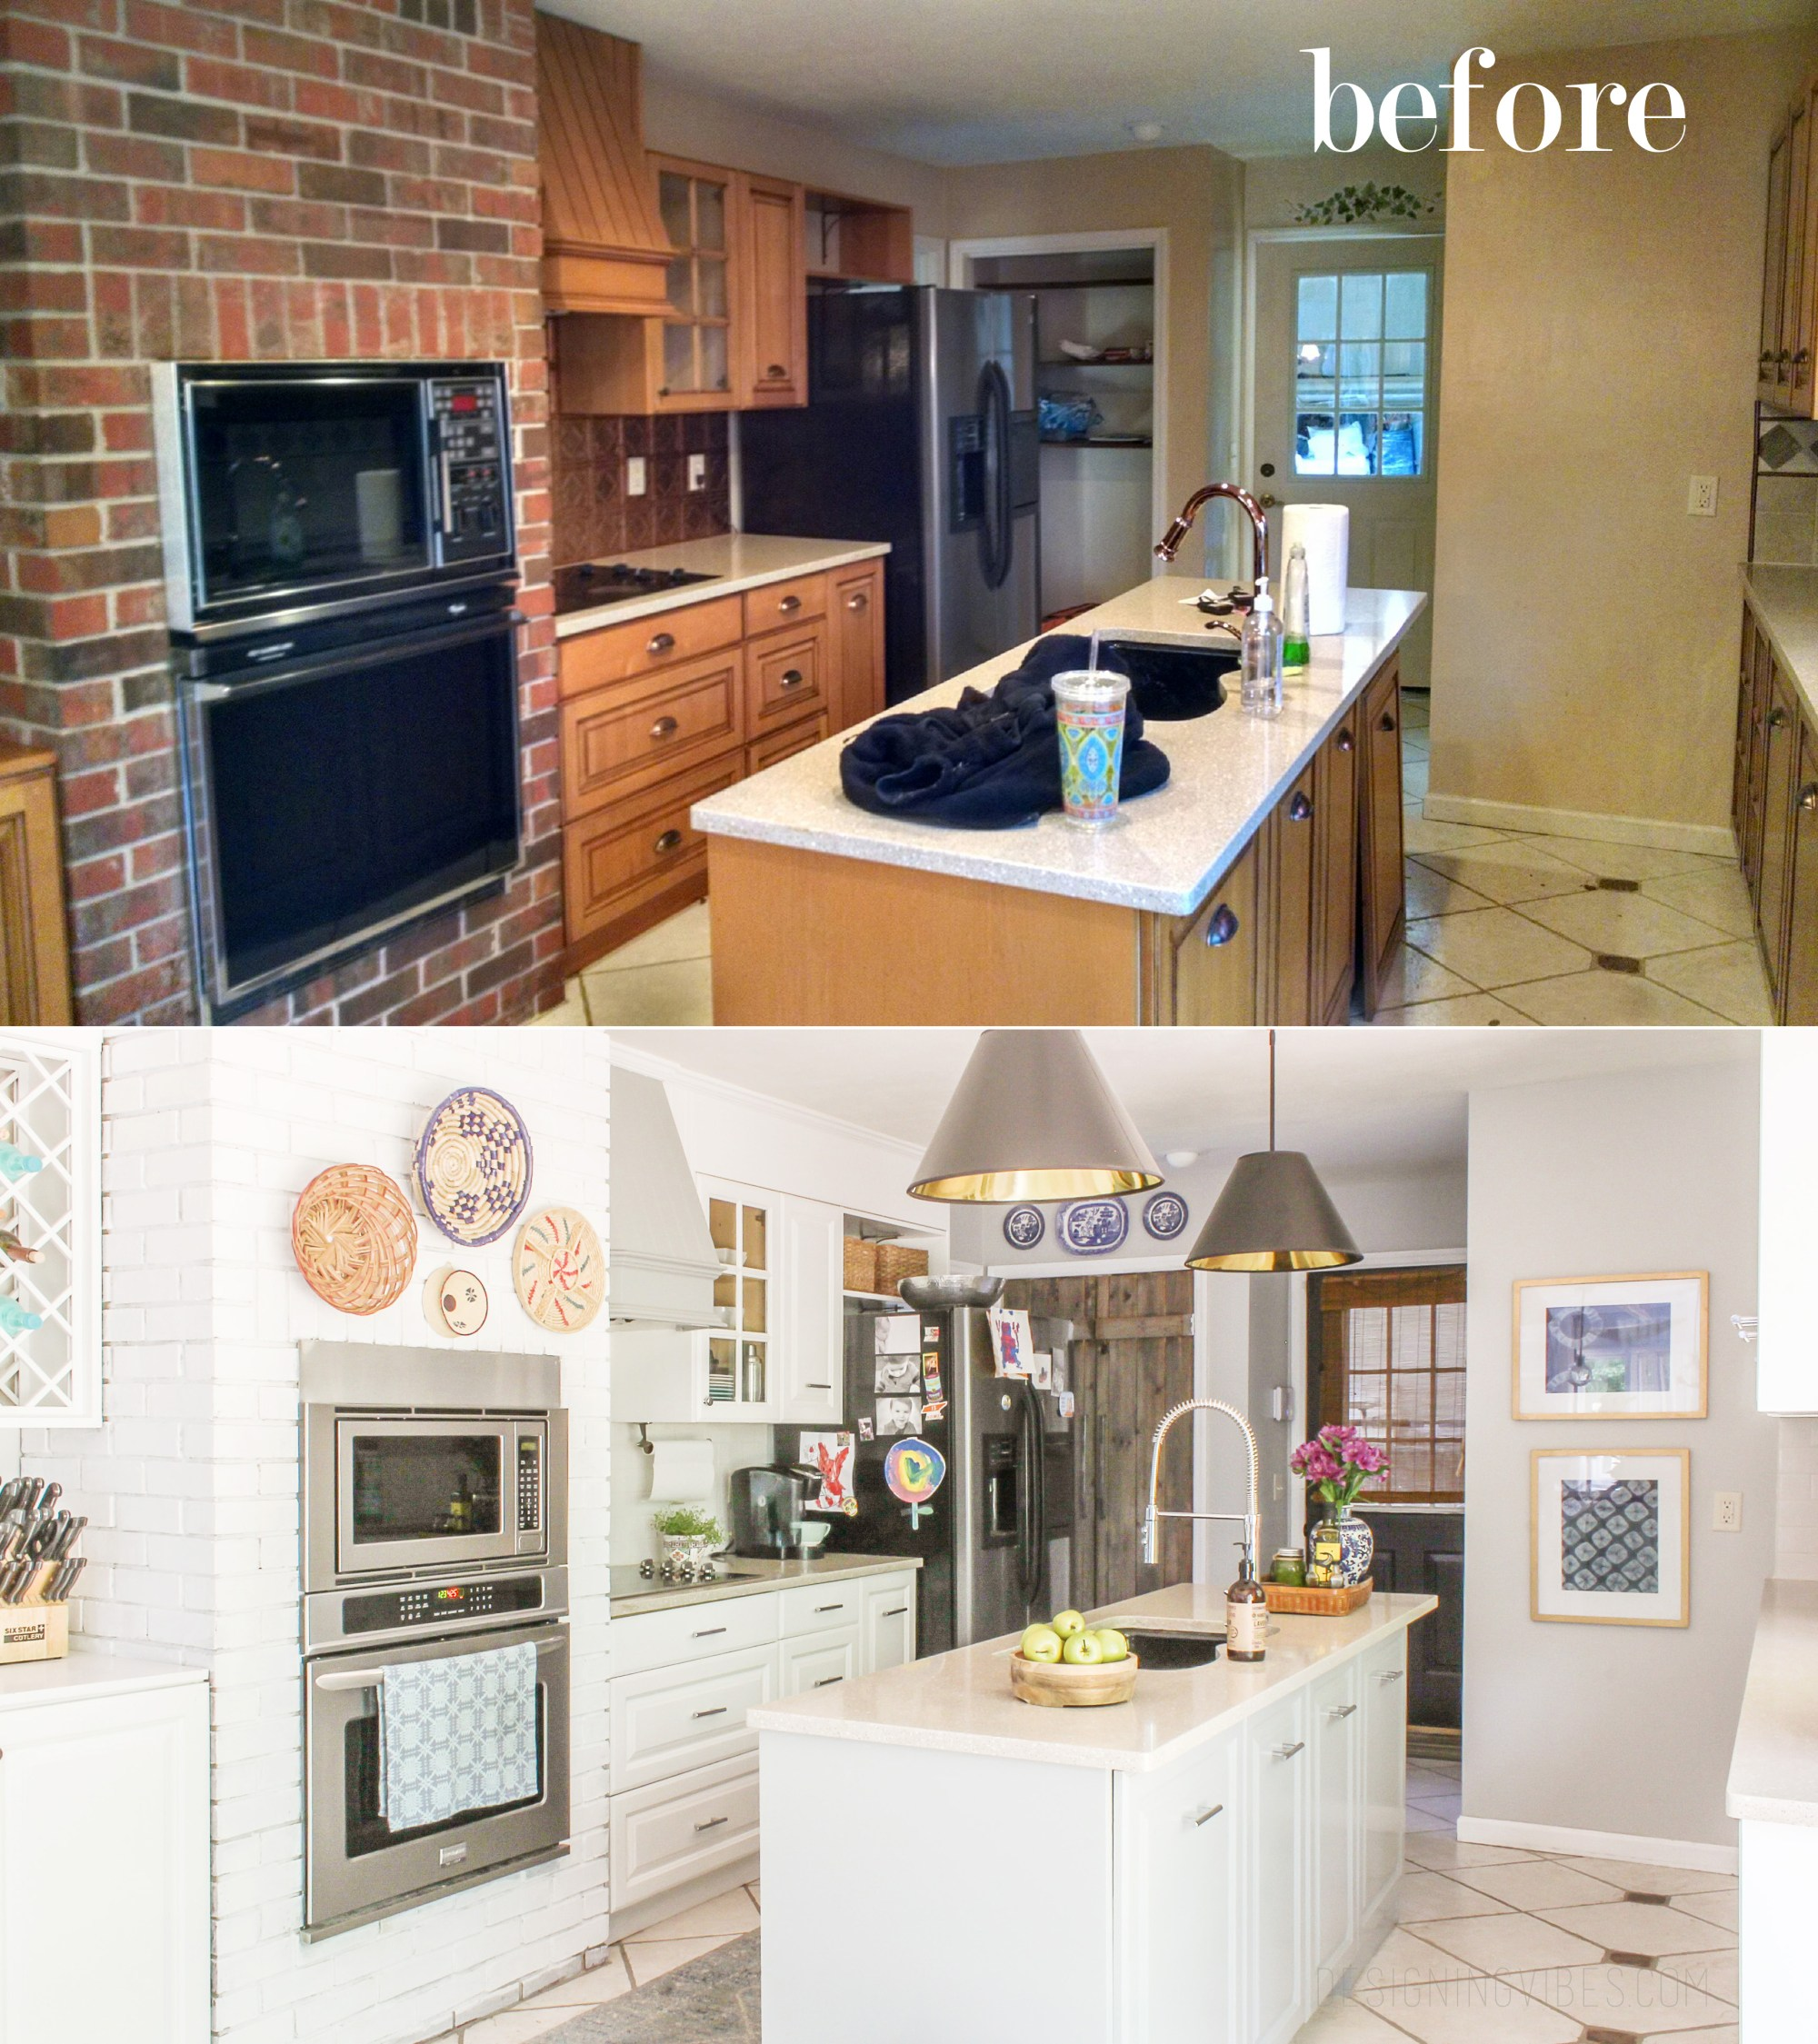 inexpensive kitchen remodel wall 5 diy budget renovations - thought